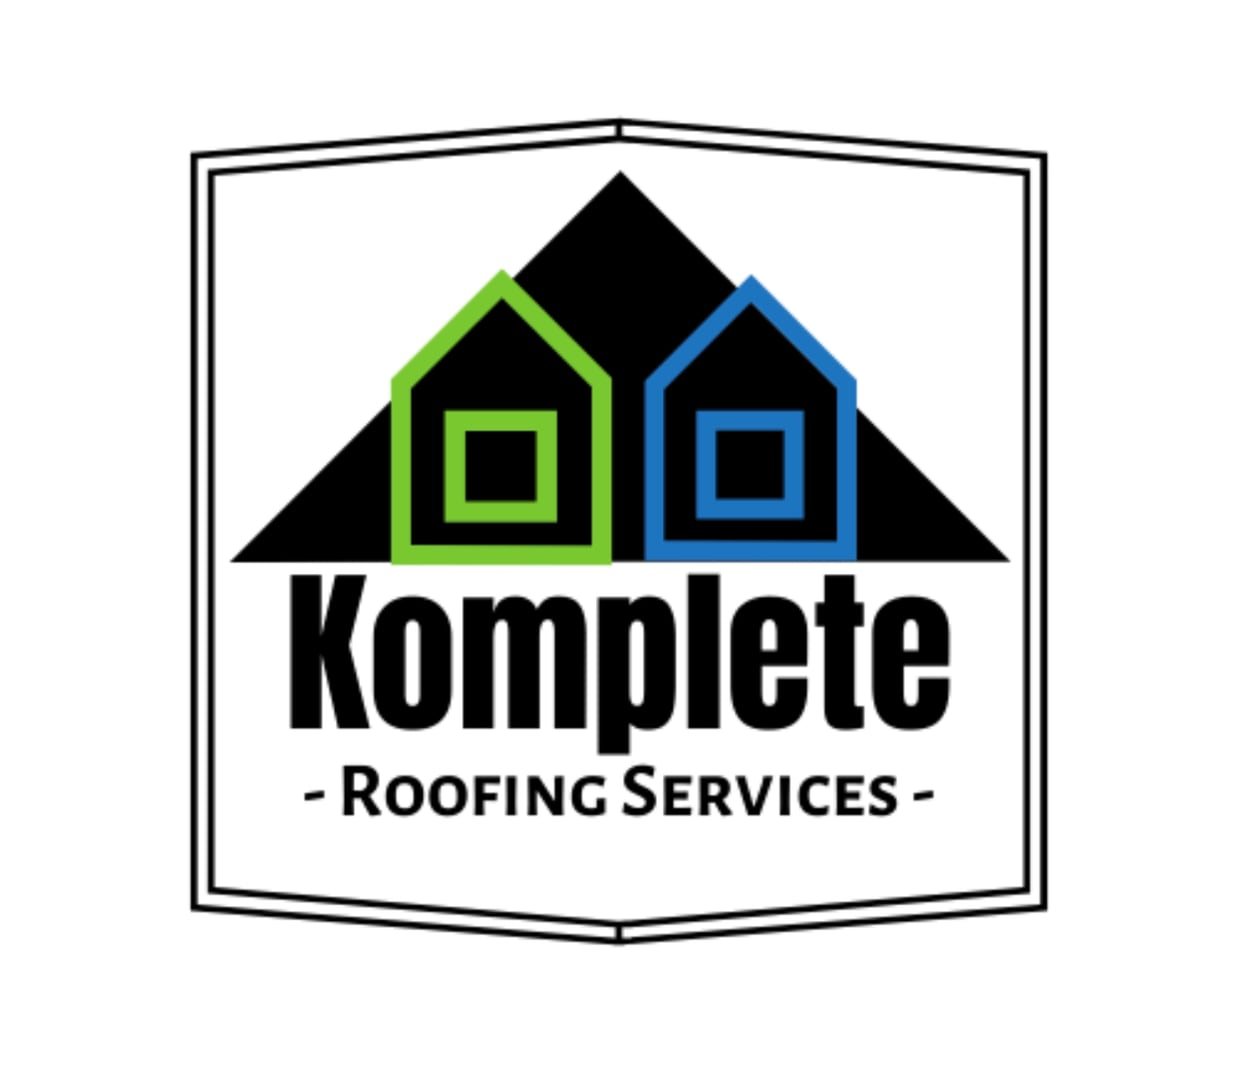 Komplete Roofing and Konstruction